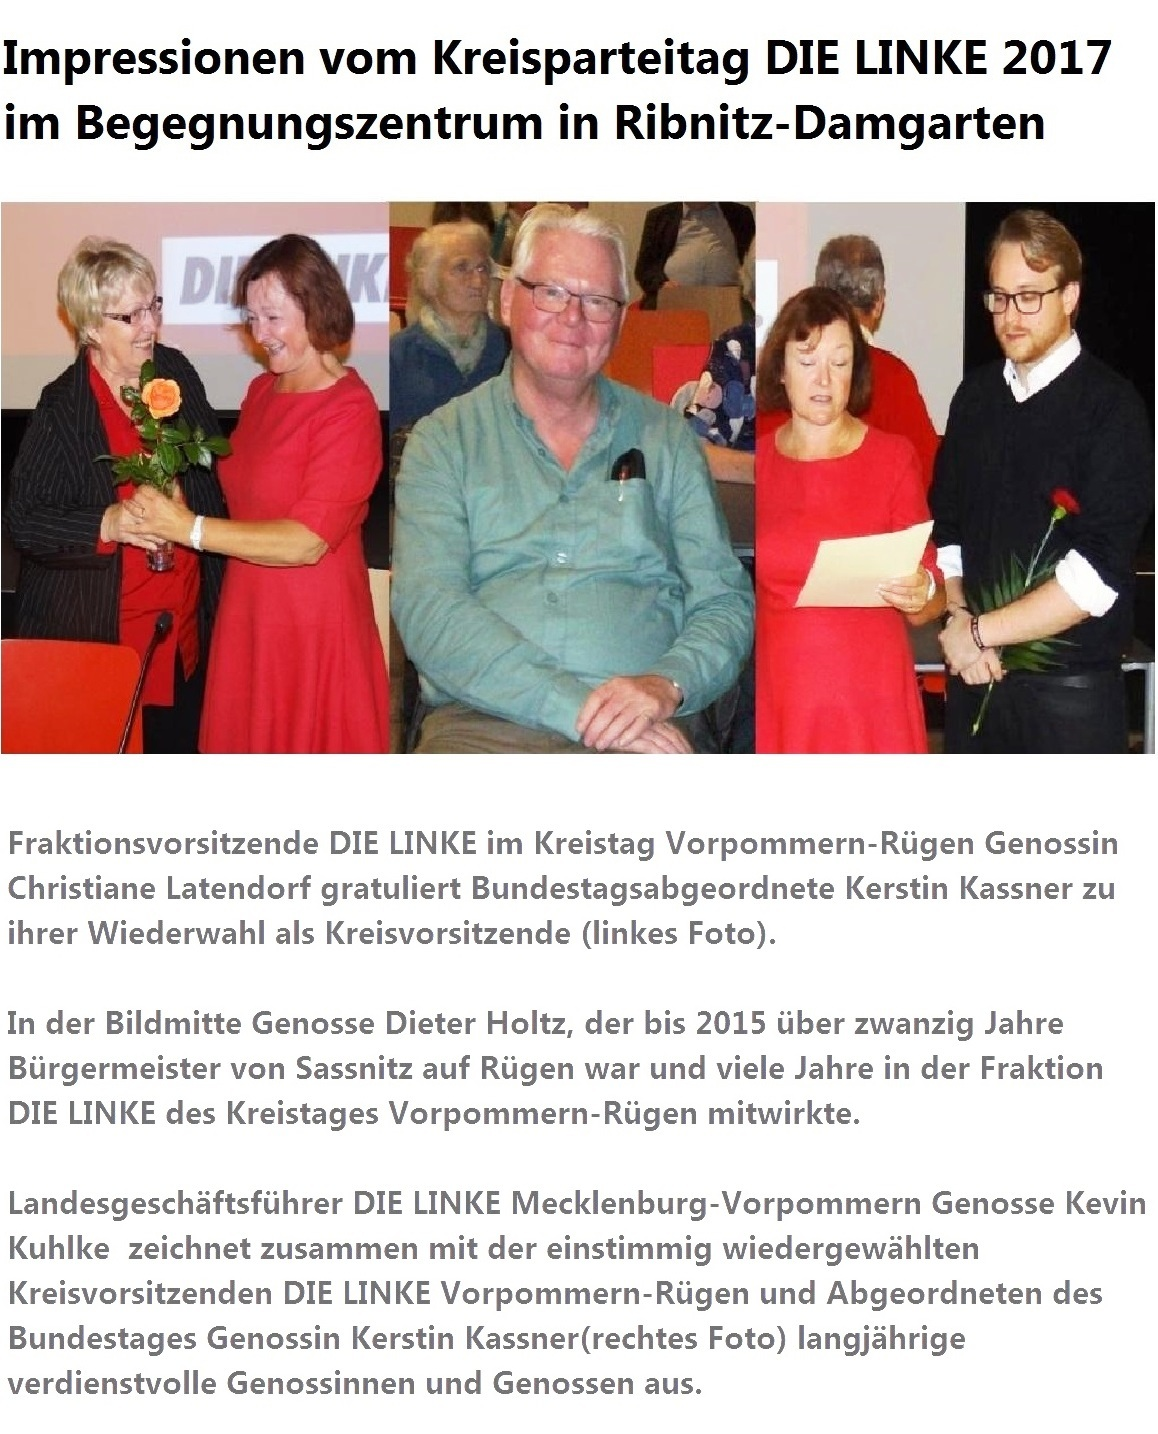 Fraktionsvorsitzende DIE LINKE im Kreistag Vorpommern-Rügen Genossin Christiane Latendorf gratuliert Bundestagsabgeordnete Kerstin Kassner zu ihrer Wiederwahl als Kreisvorsitzende (linkes Foto). In der Bildmitte Genosse Dieter Holtz, der bis 2015 über zwanzig Jahre Bürgermeister von Sassnitz auf Rügen. Rechtes Foto: Landesgeschäftsführer DIE LINKE Mecklenburg-Vorpommern Kevin Kuhlke mit Kerstin Kassner bei Auszeichnungen verdienstvoller Genossinnen und Genossen.  - Fotos und Fotomontage: Eckart Kreitlow